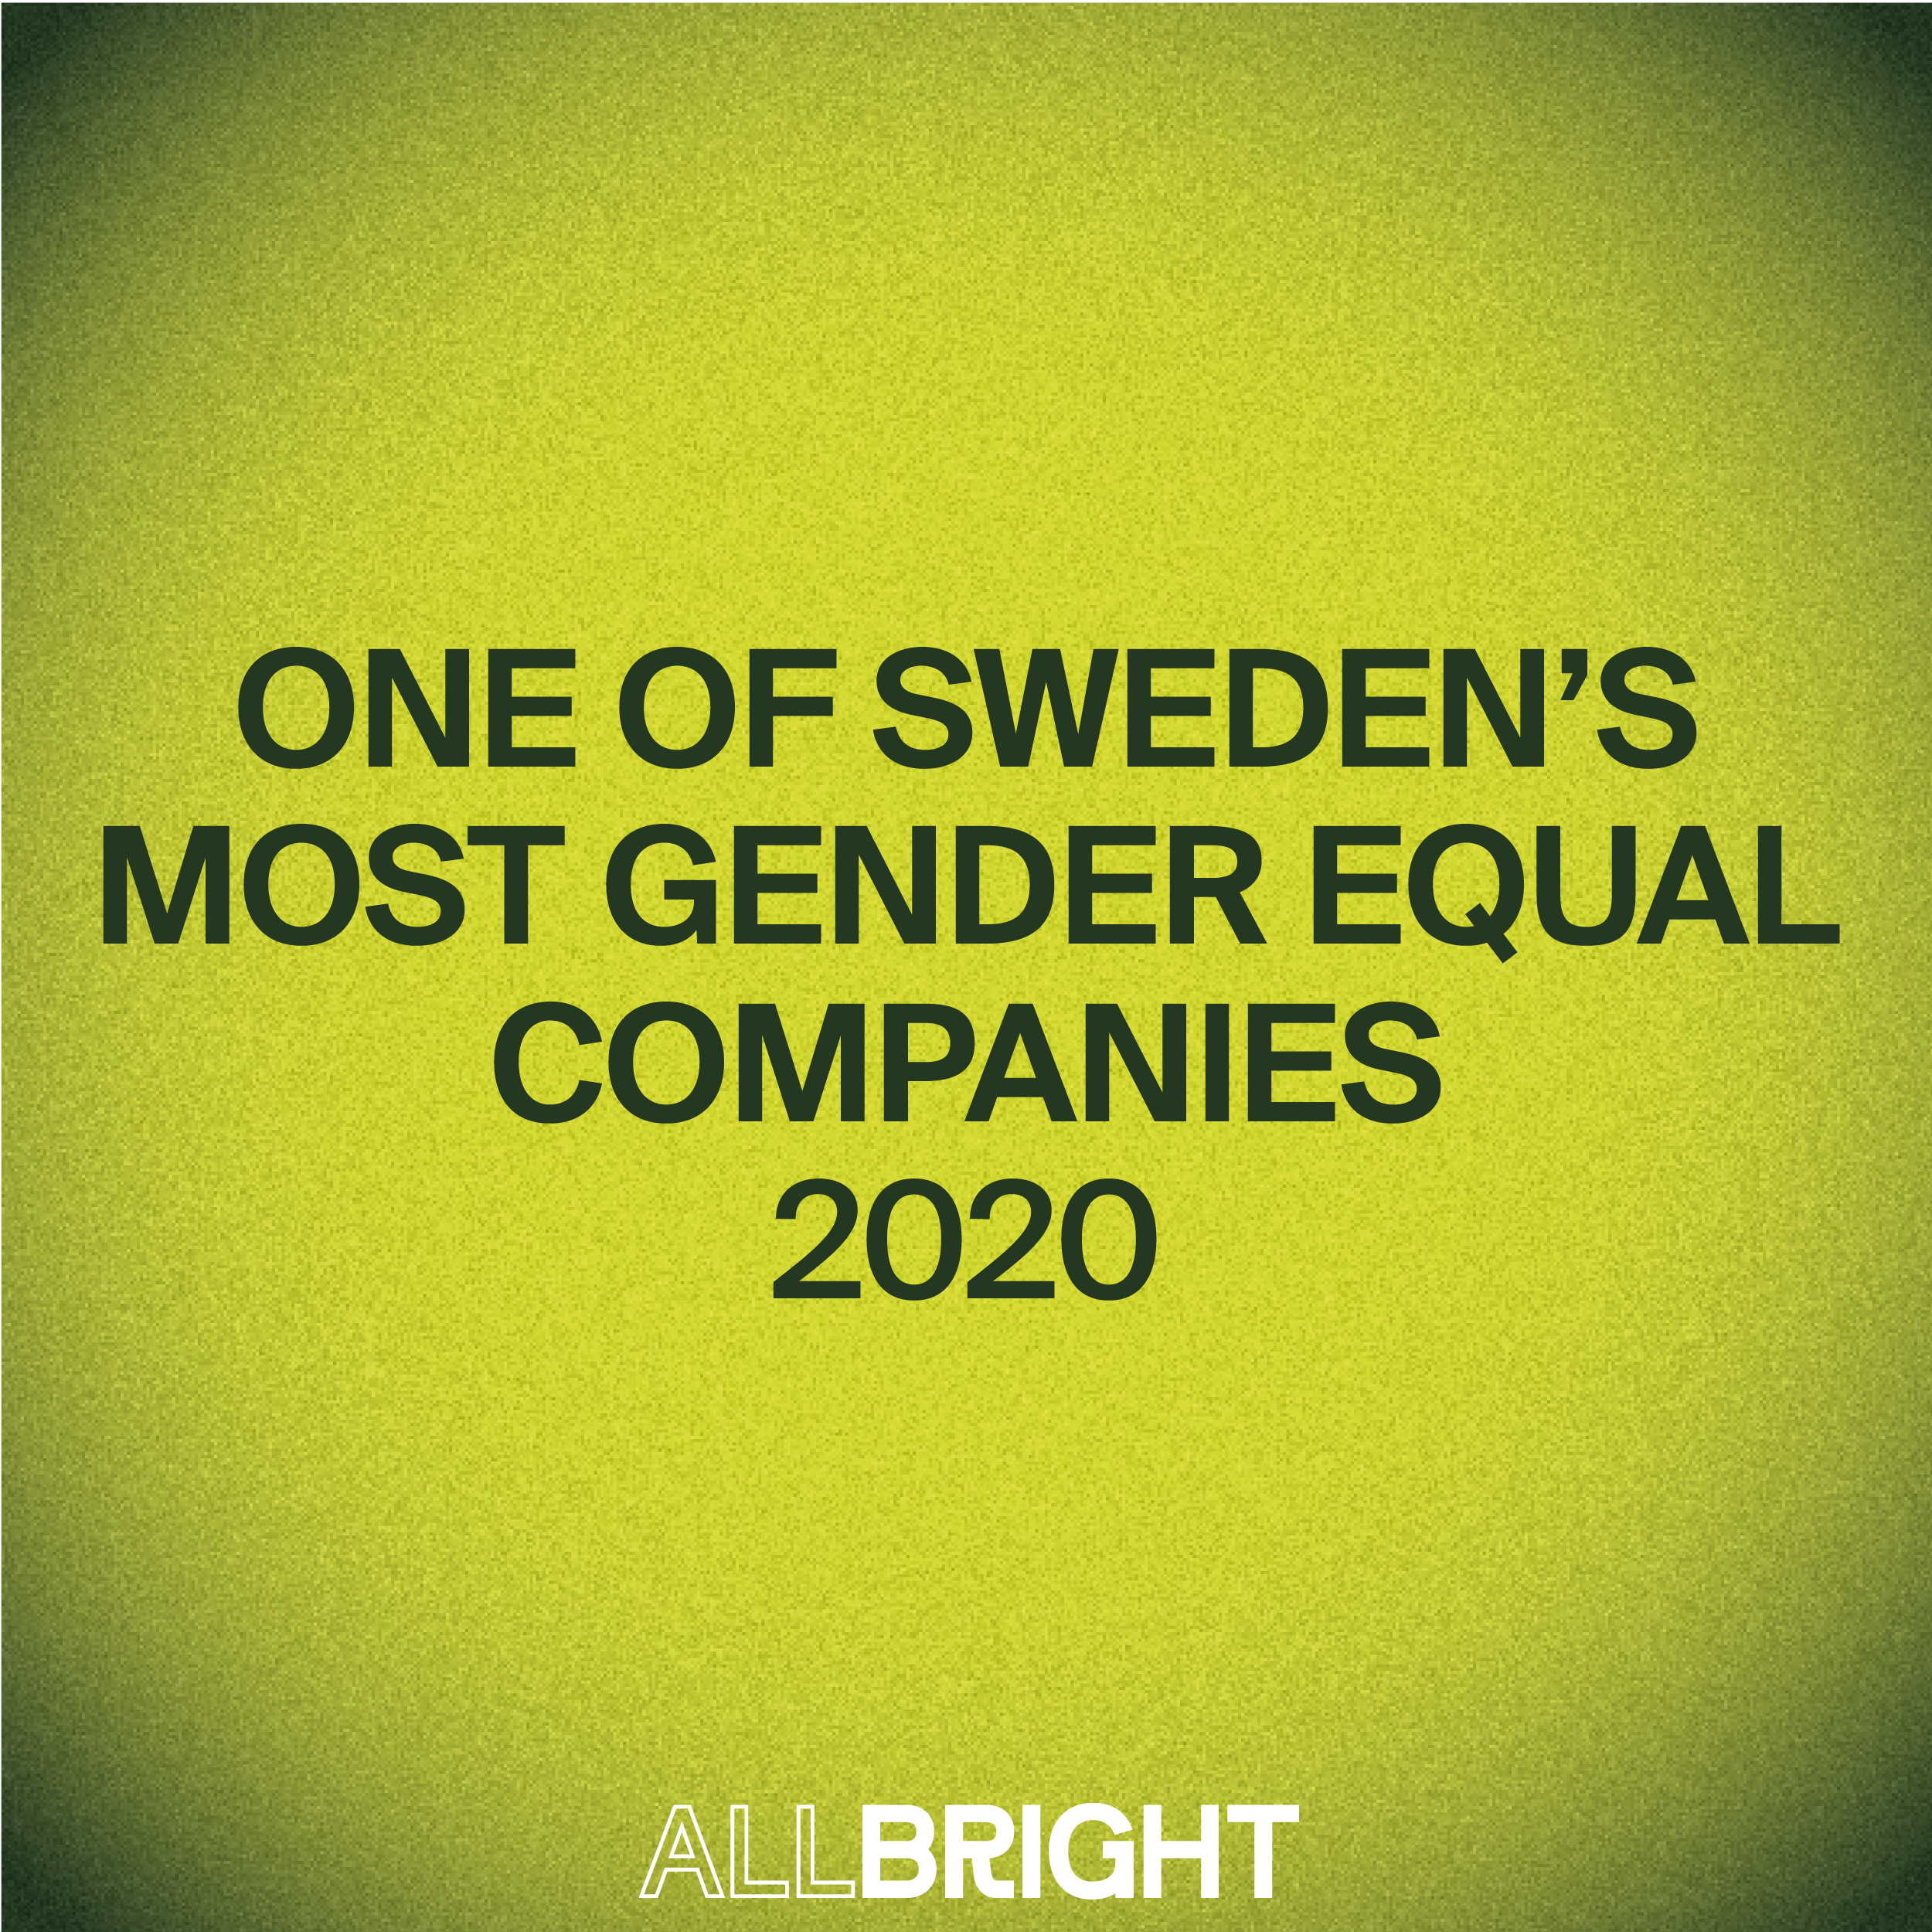 We are one of Swedens most equal companies